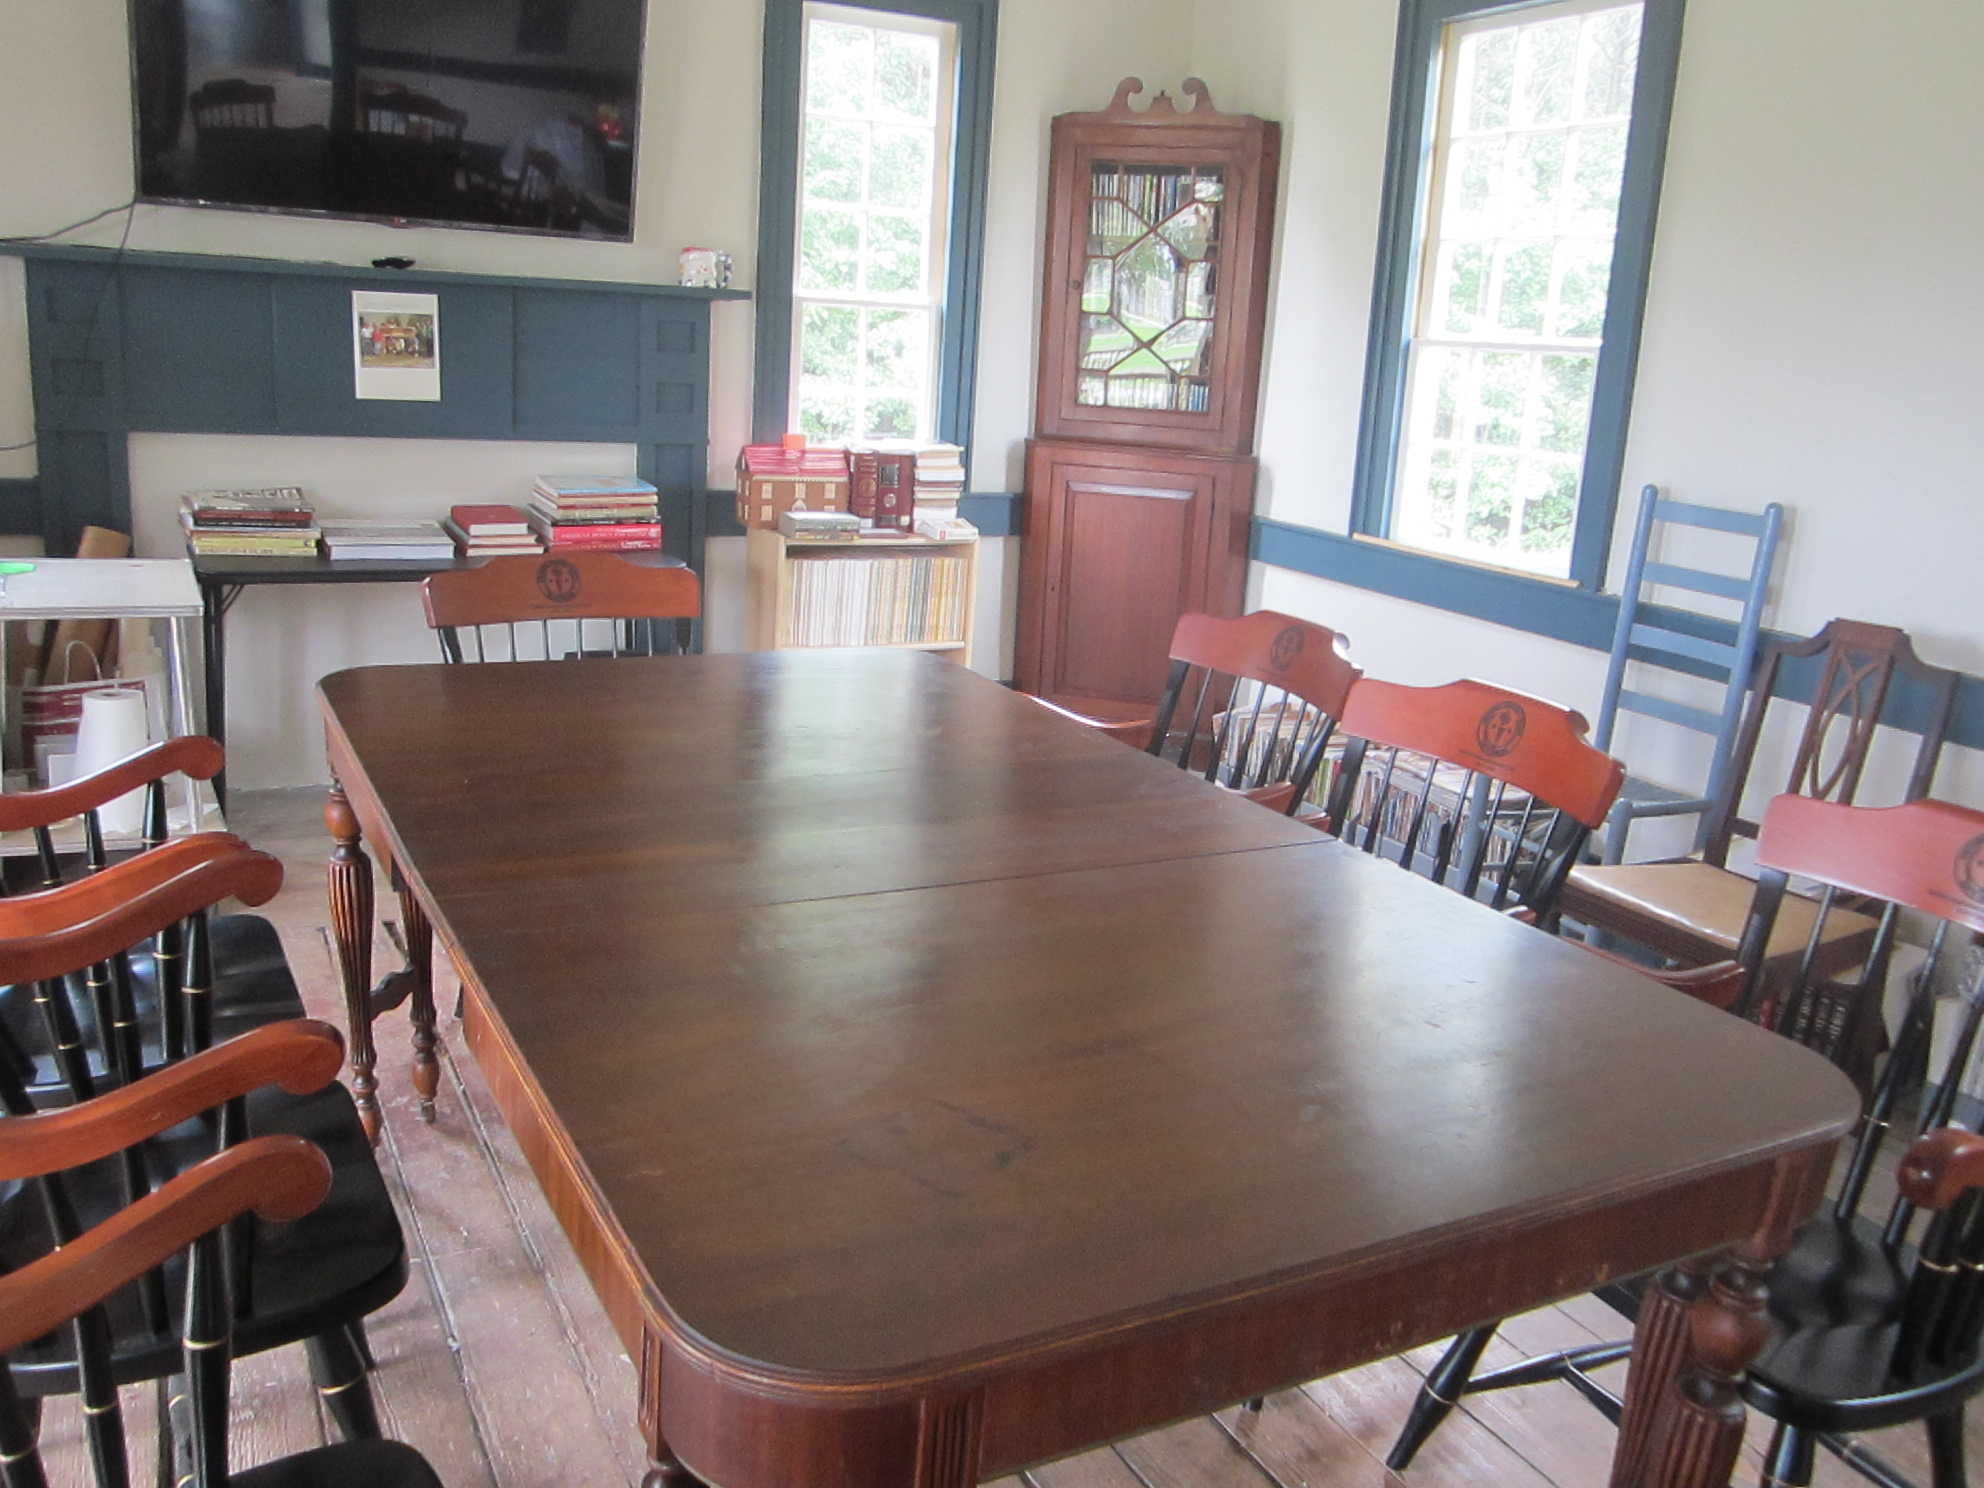 Original dining room now serves as conference/classroom for the Historic Preservation program.